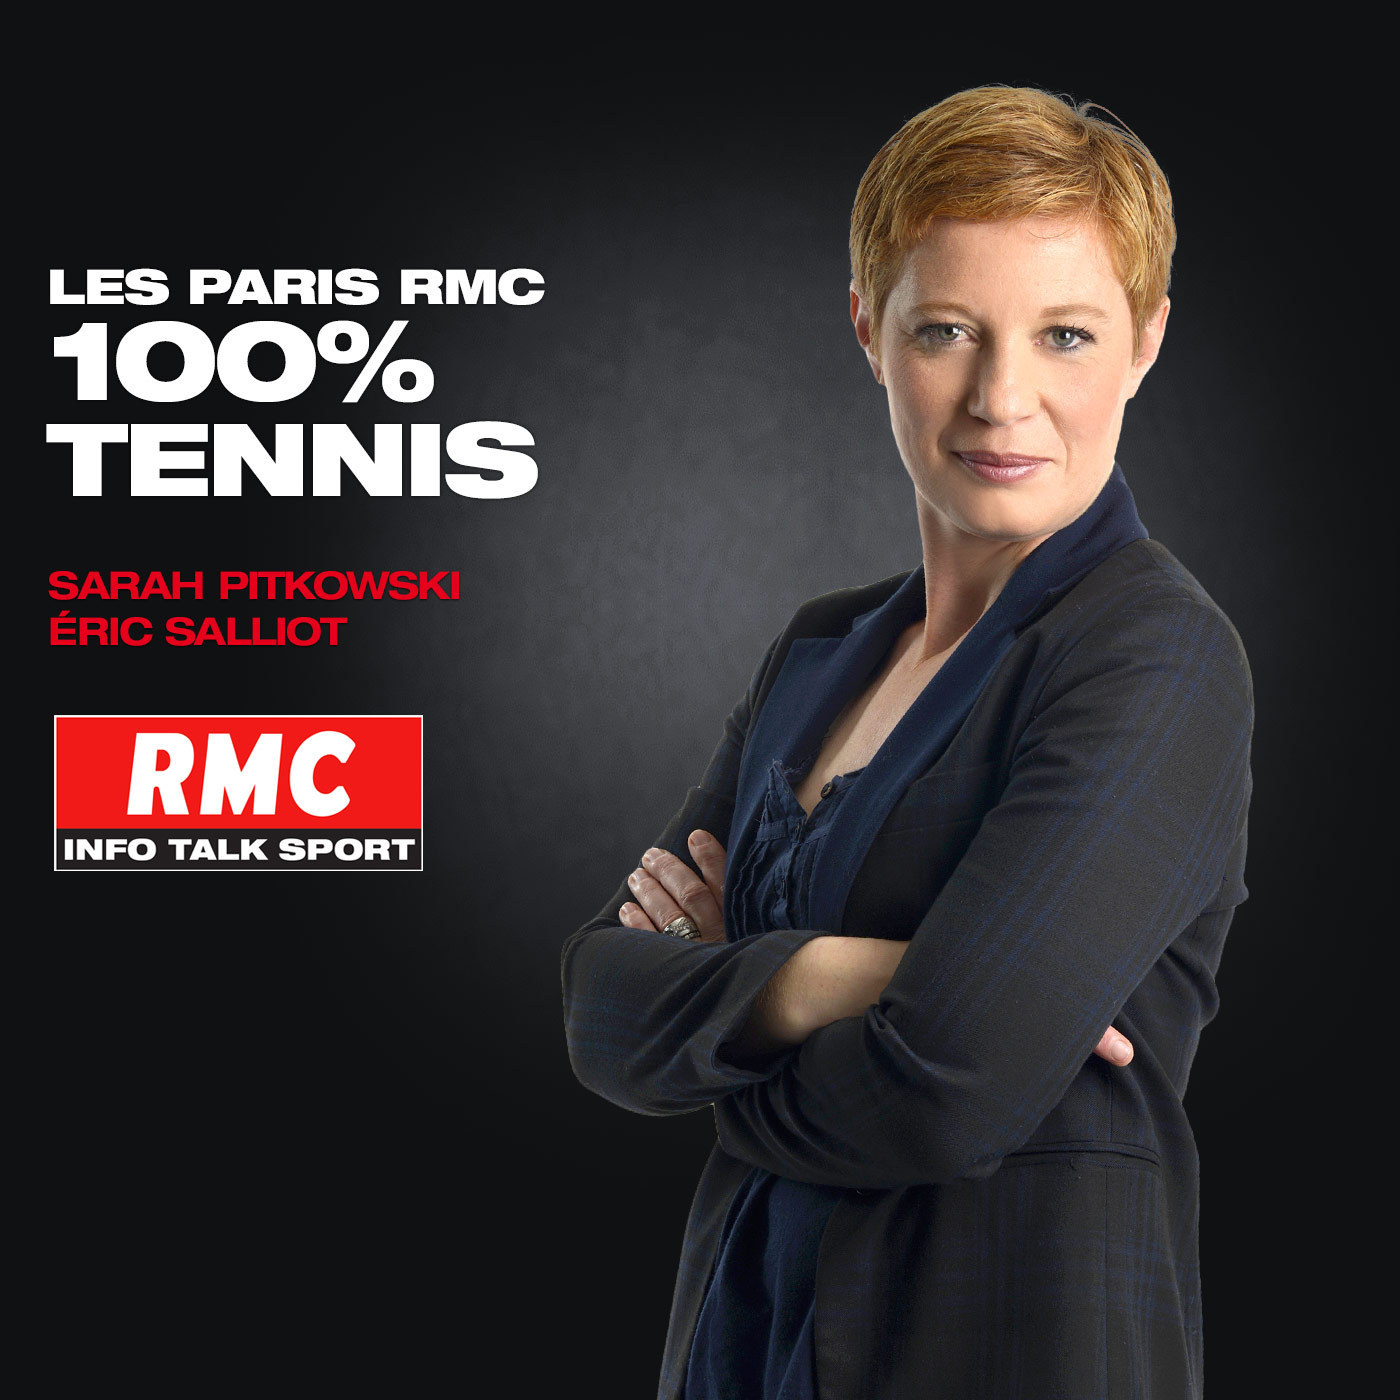 MOSCATO TÉLÉCHARGER PODCAST RMC